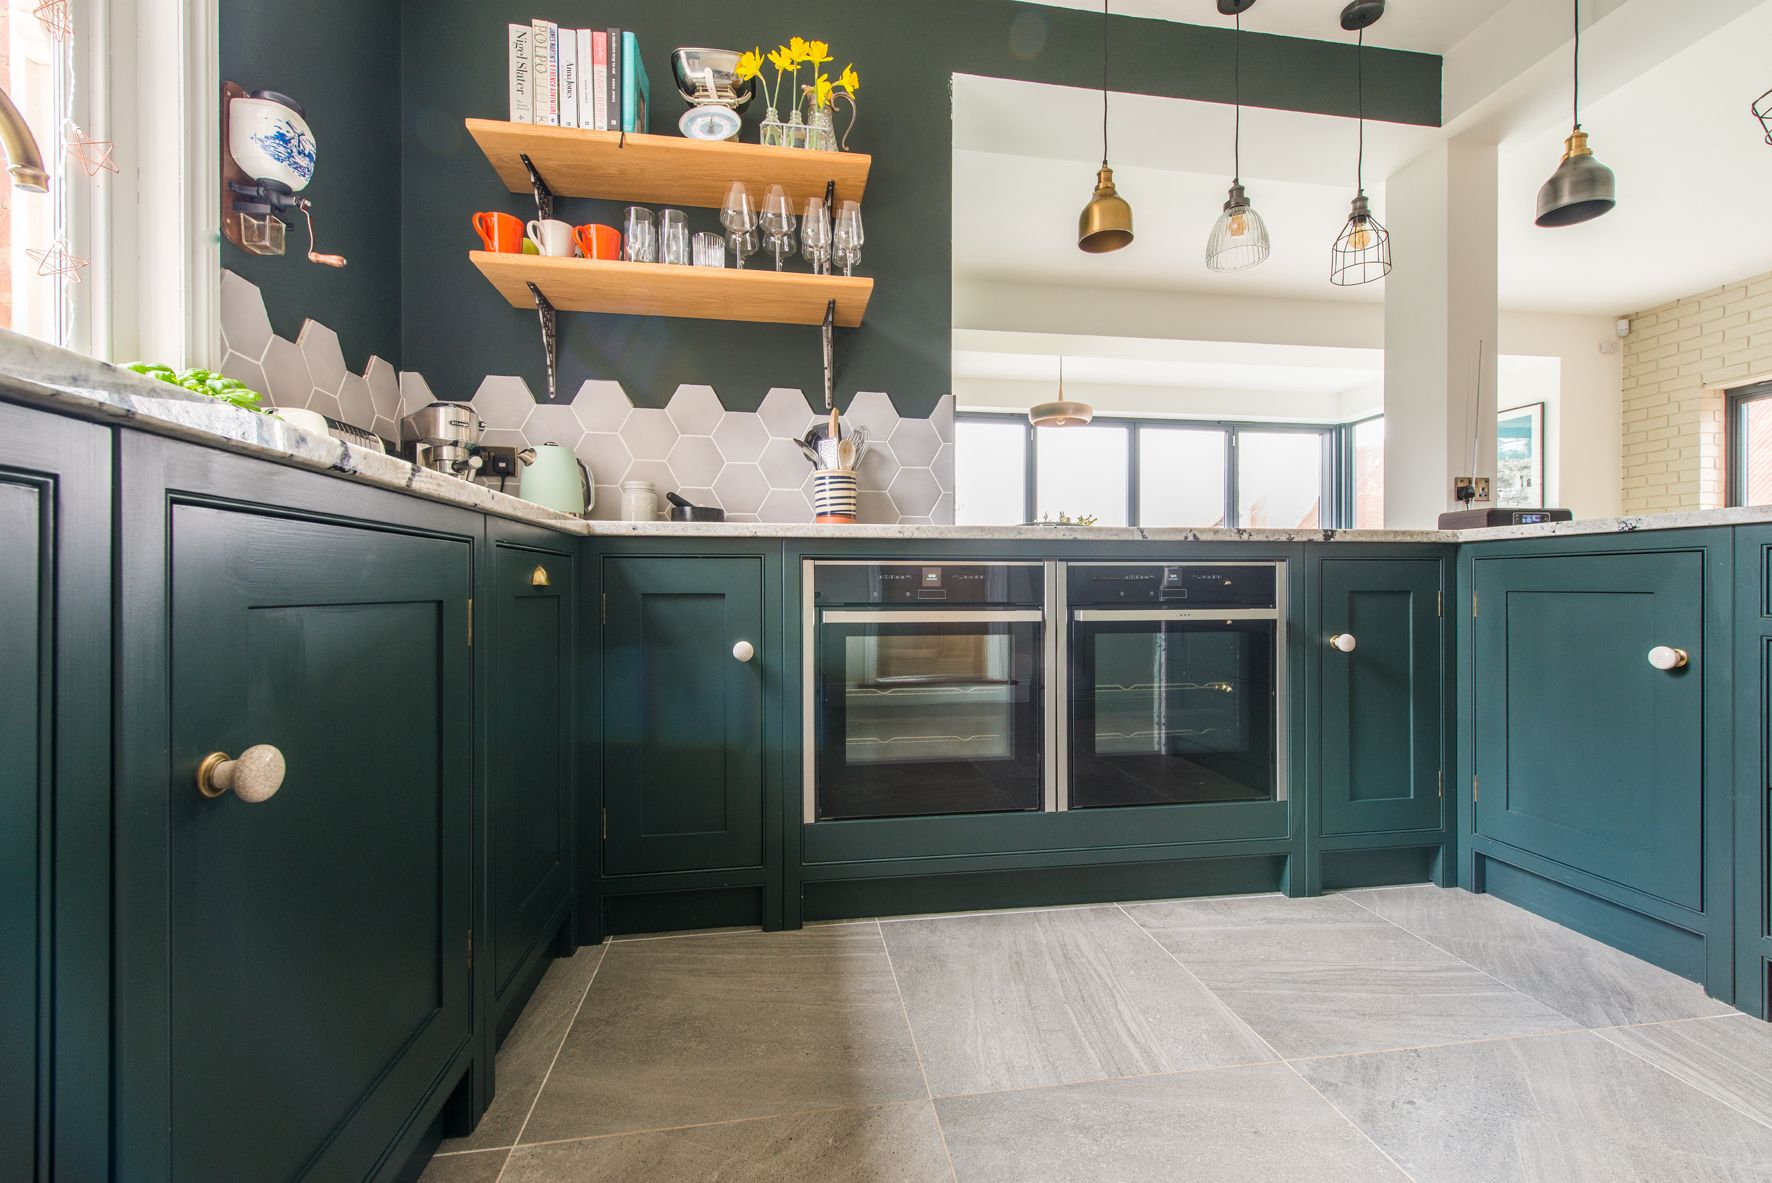 Farrow Ball Studio Green And Green Smoke Painted Bespoke Kitchen Made In Kent Finished With Brass Handles Bespoke Kitchens Kitchen Farrow And Ball Kitchen